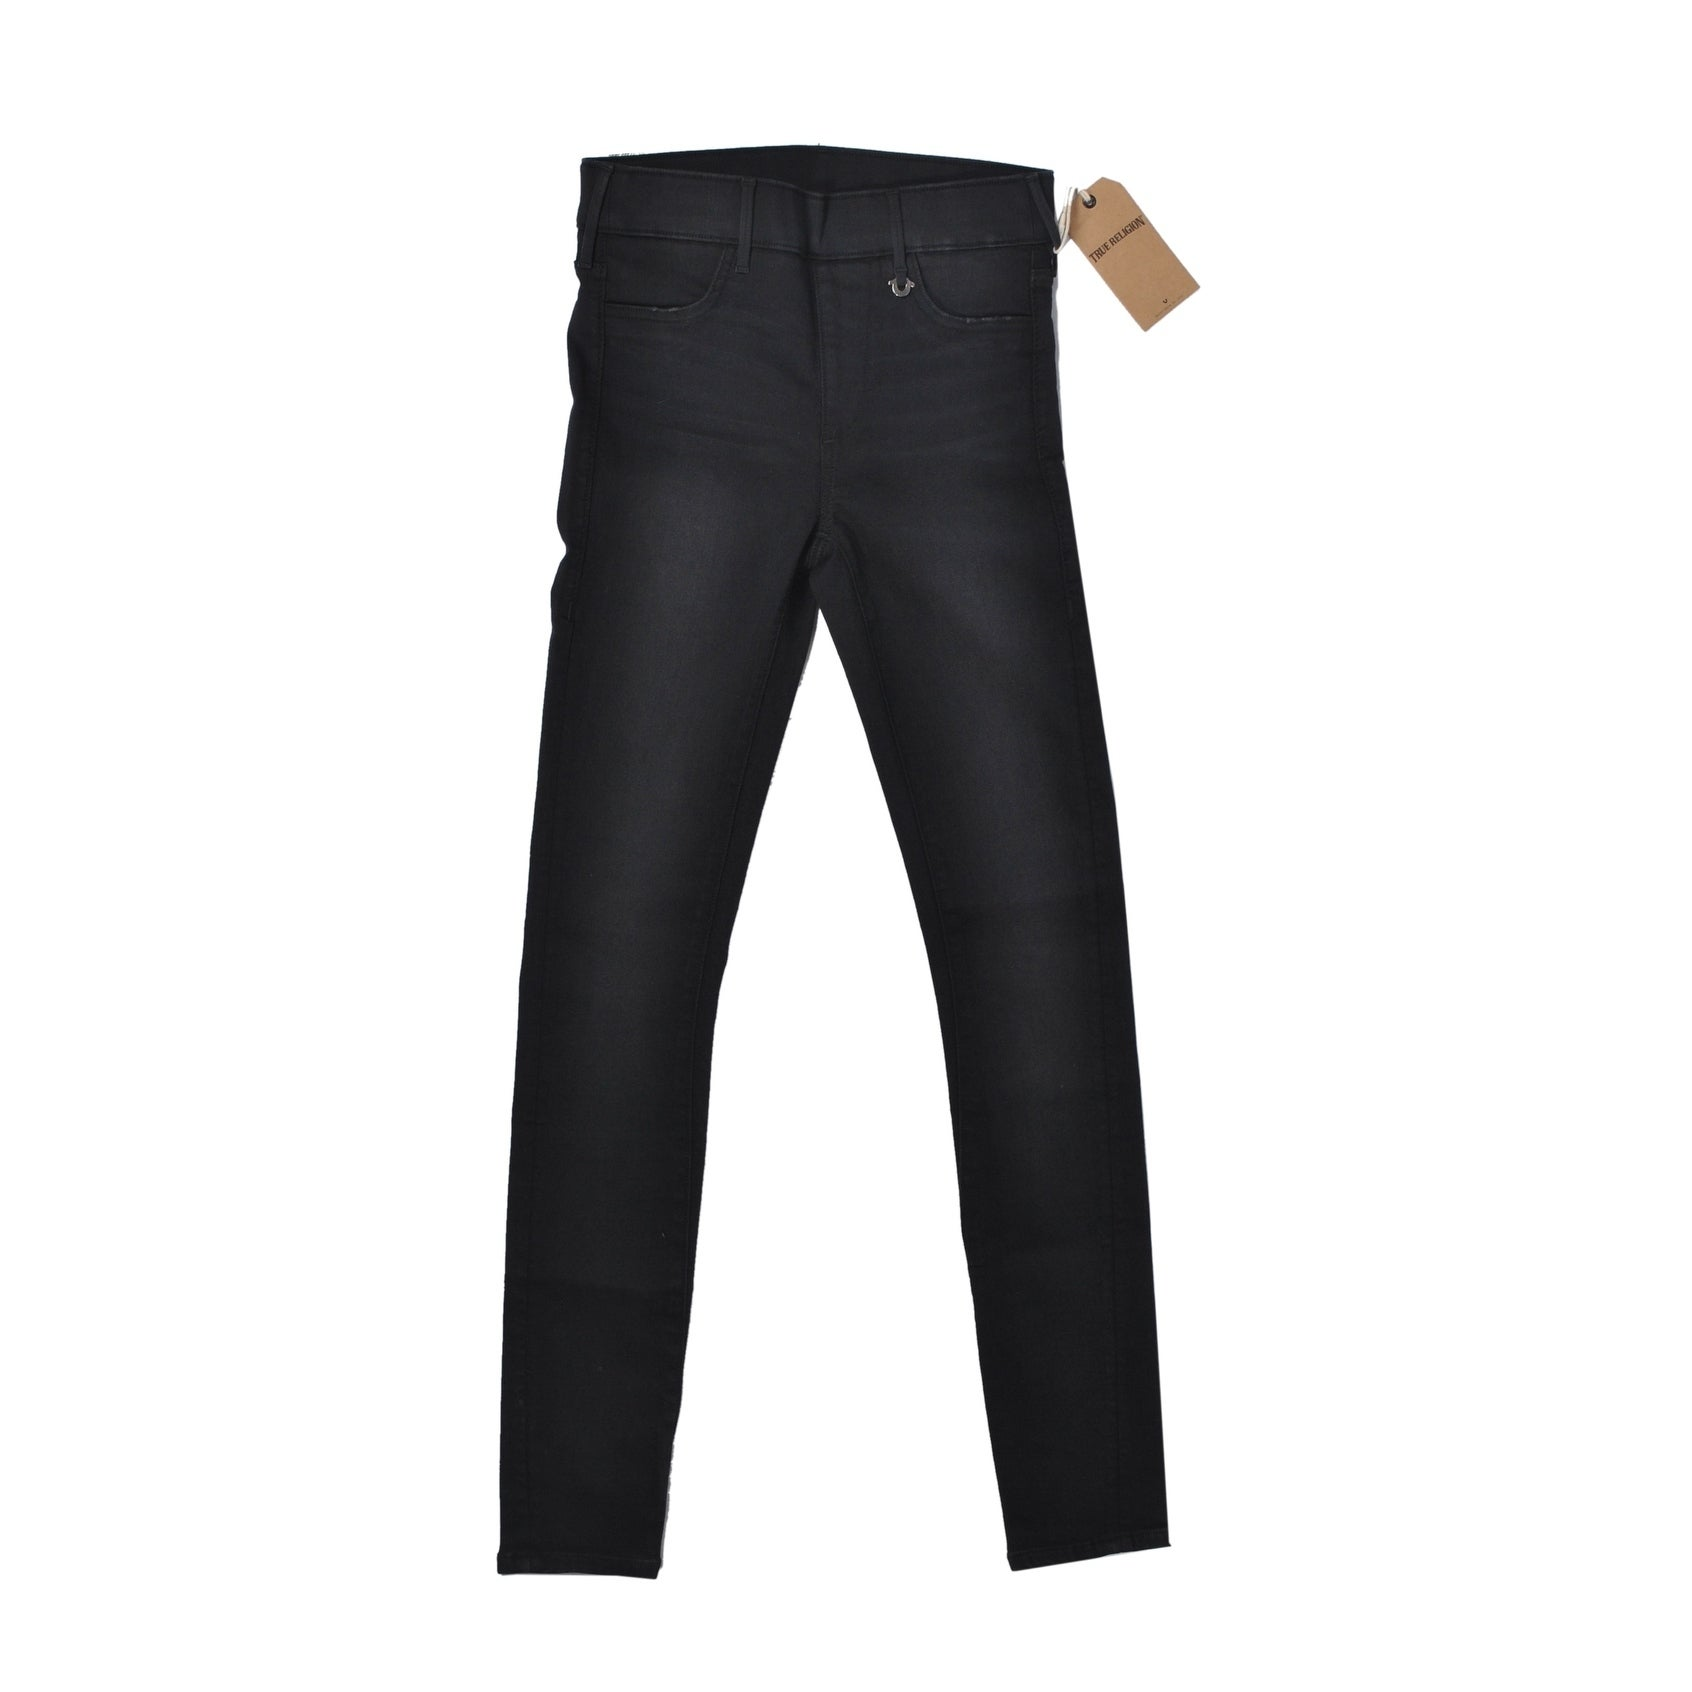 888792c3a Shop True Religion Black Stretch Denim - On Sale - Free Shipping On Orders  Over  45 - Overstock.com - 19511990